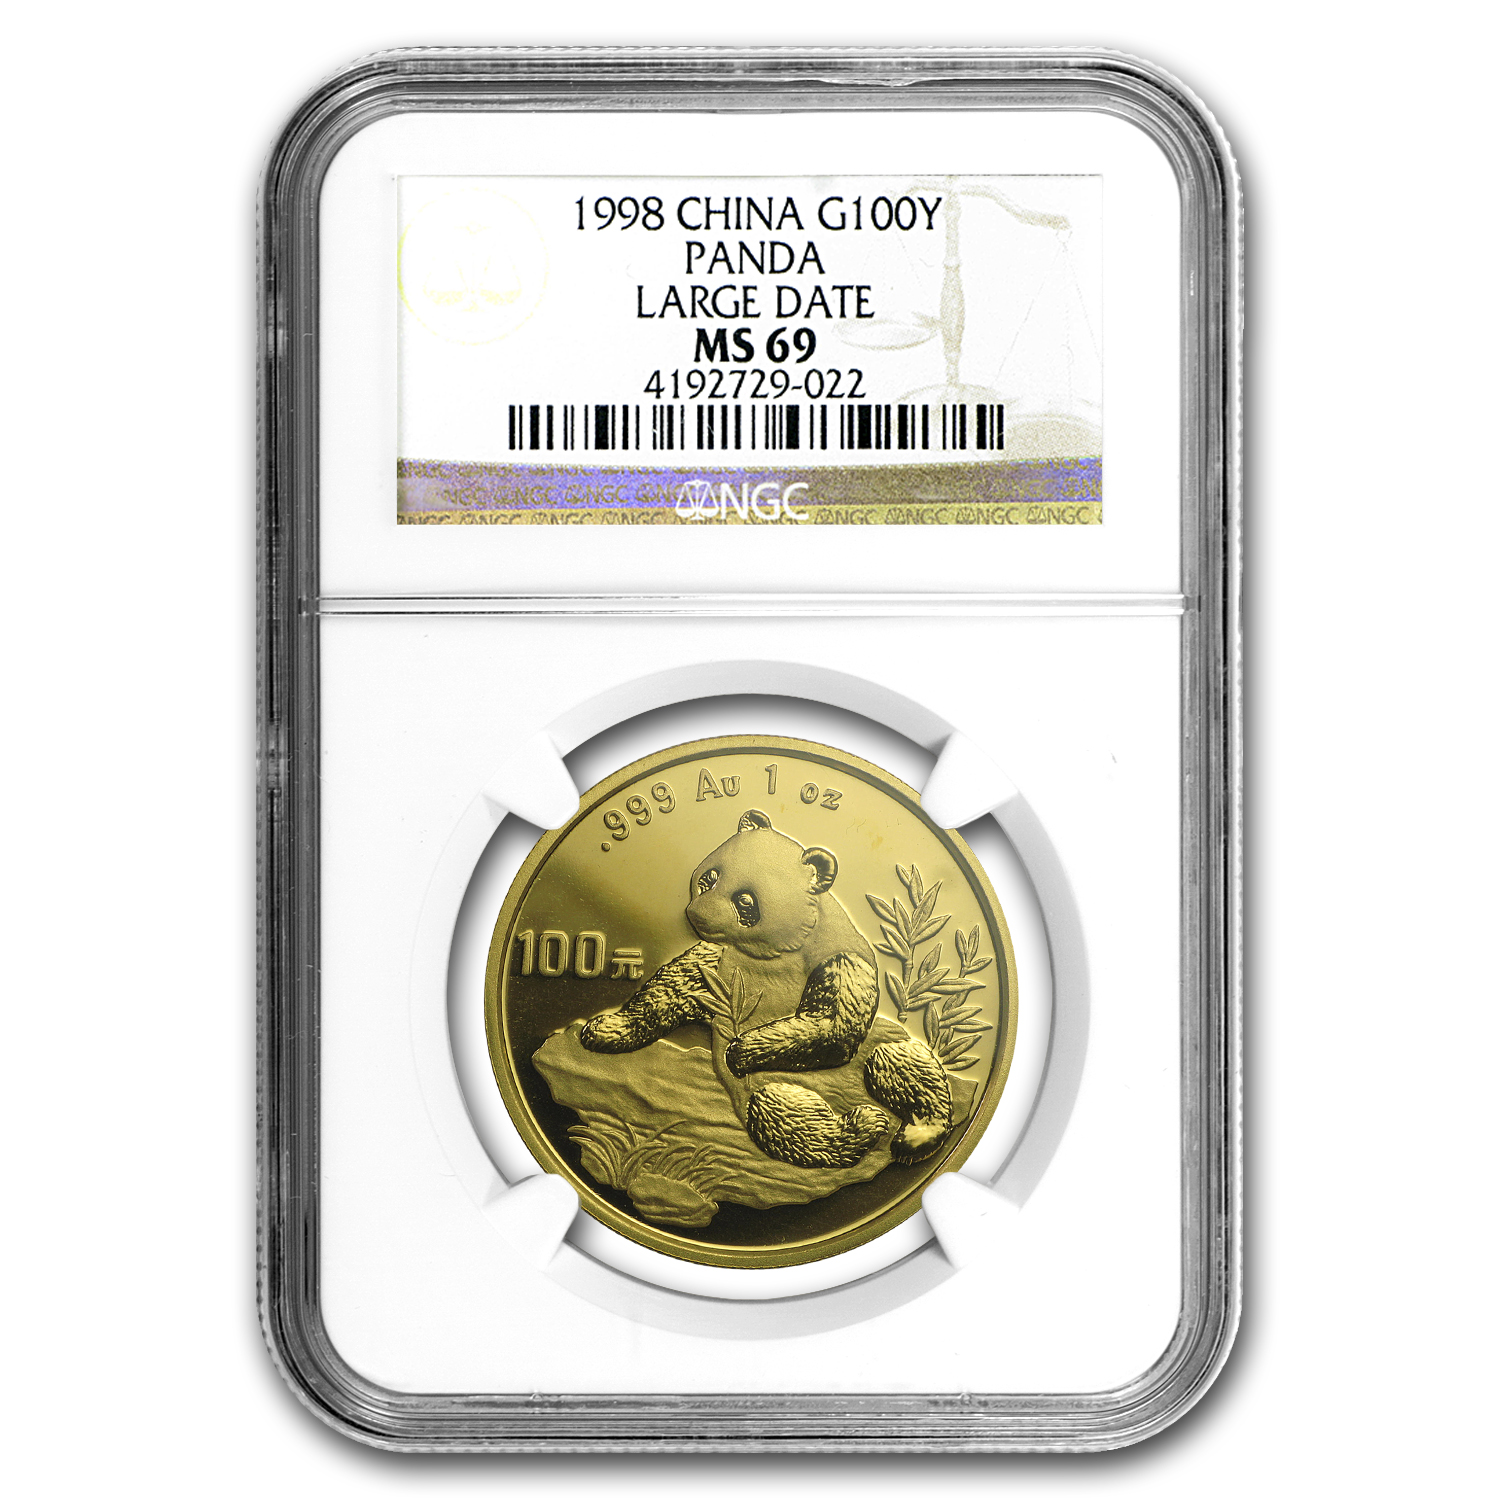 1998 1 oz Gold Chinese Panda Large Date MS-69 NGC